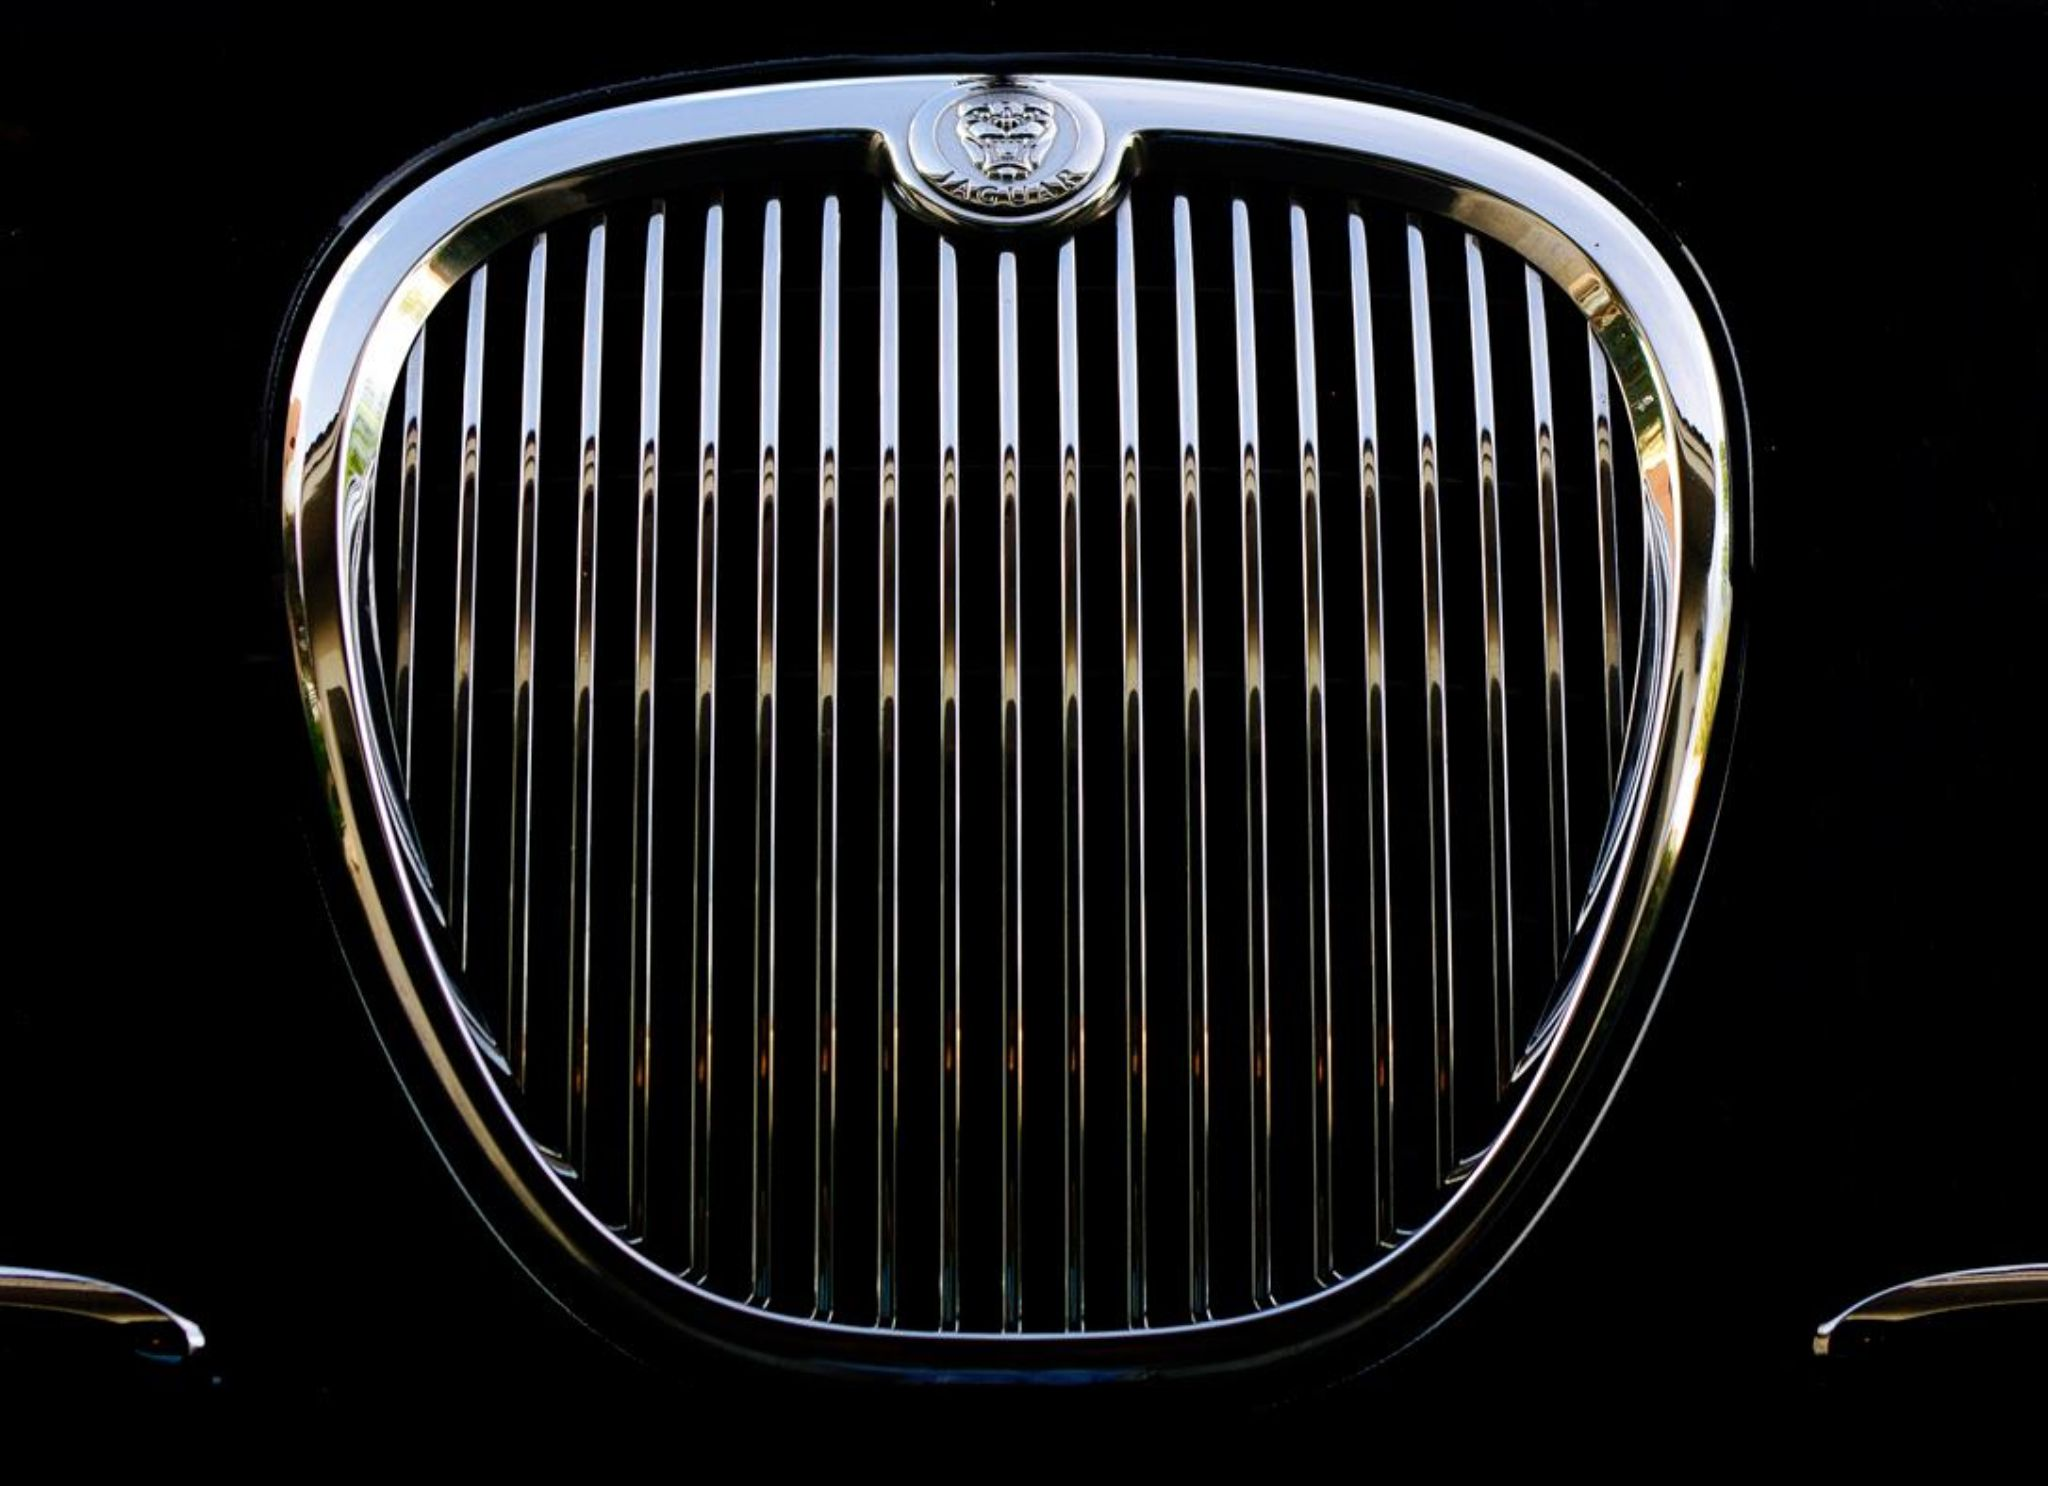 Jaguar S type Grill  by CFprophoto